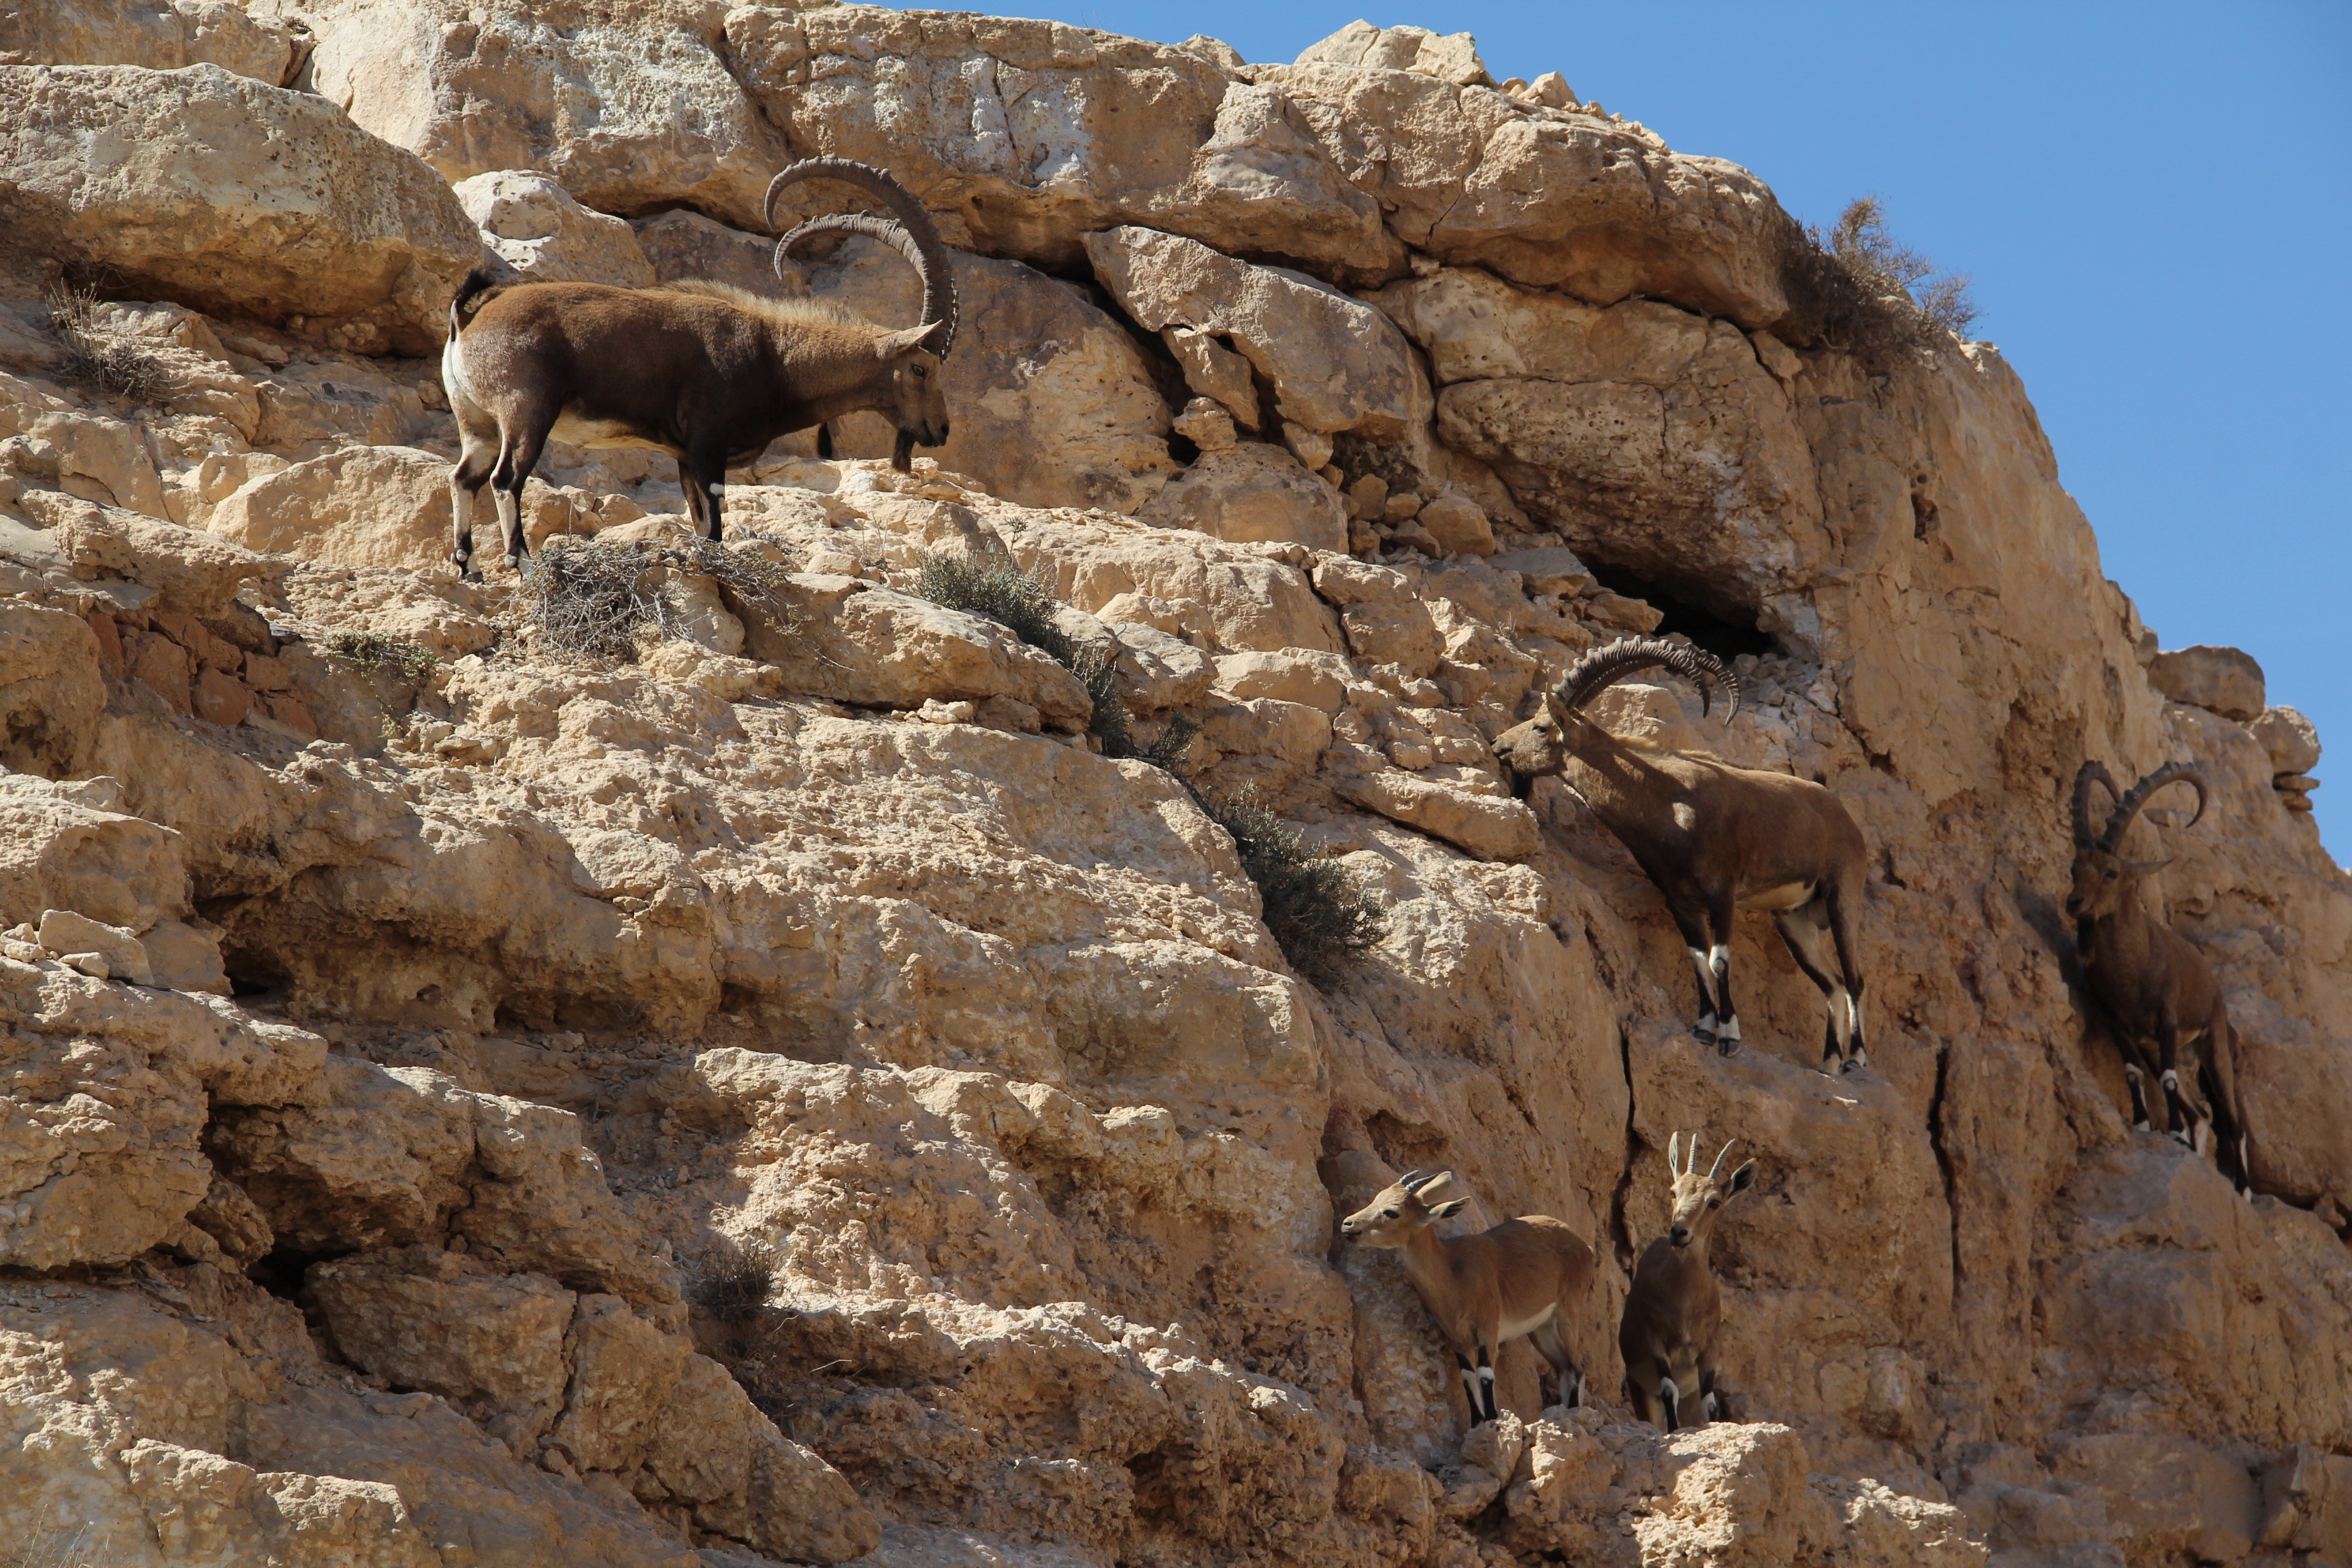 Rock mountain goat desert